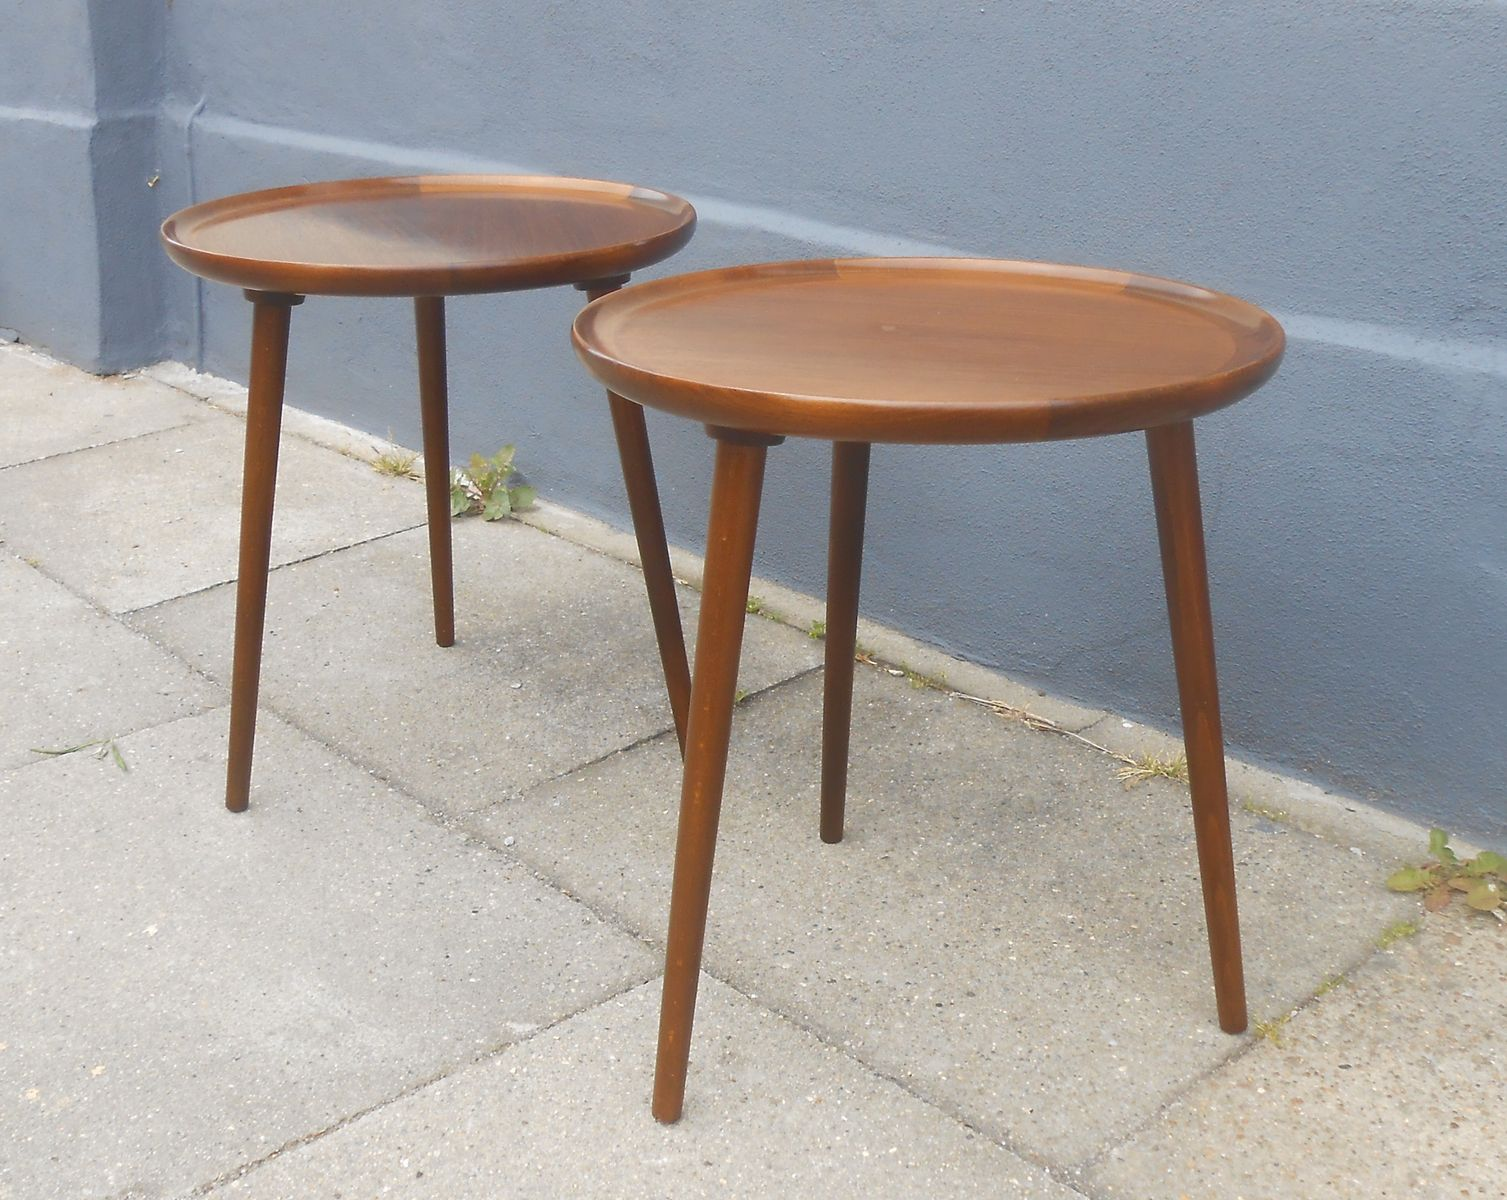 three legged side tables revolutionhr round walnut anton kildeberg set wood accent table wooden designs and mirror coffee farmhouse plans black gold lamp mid century modern dining